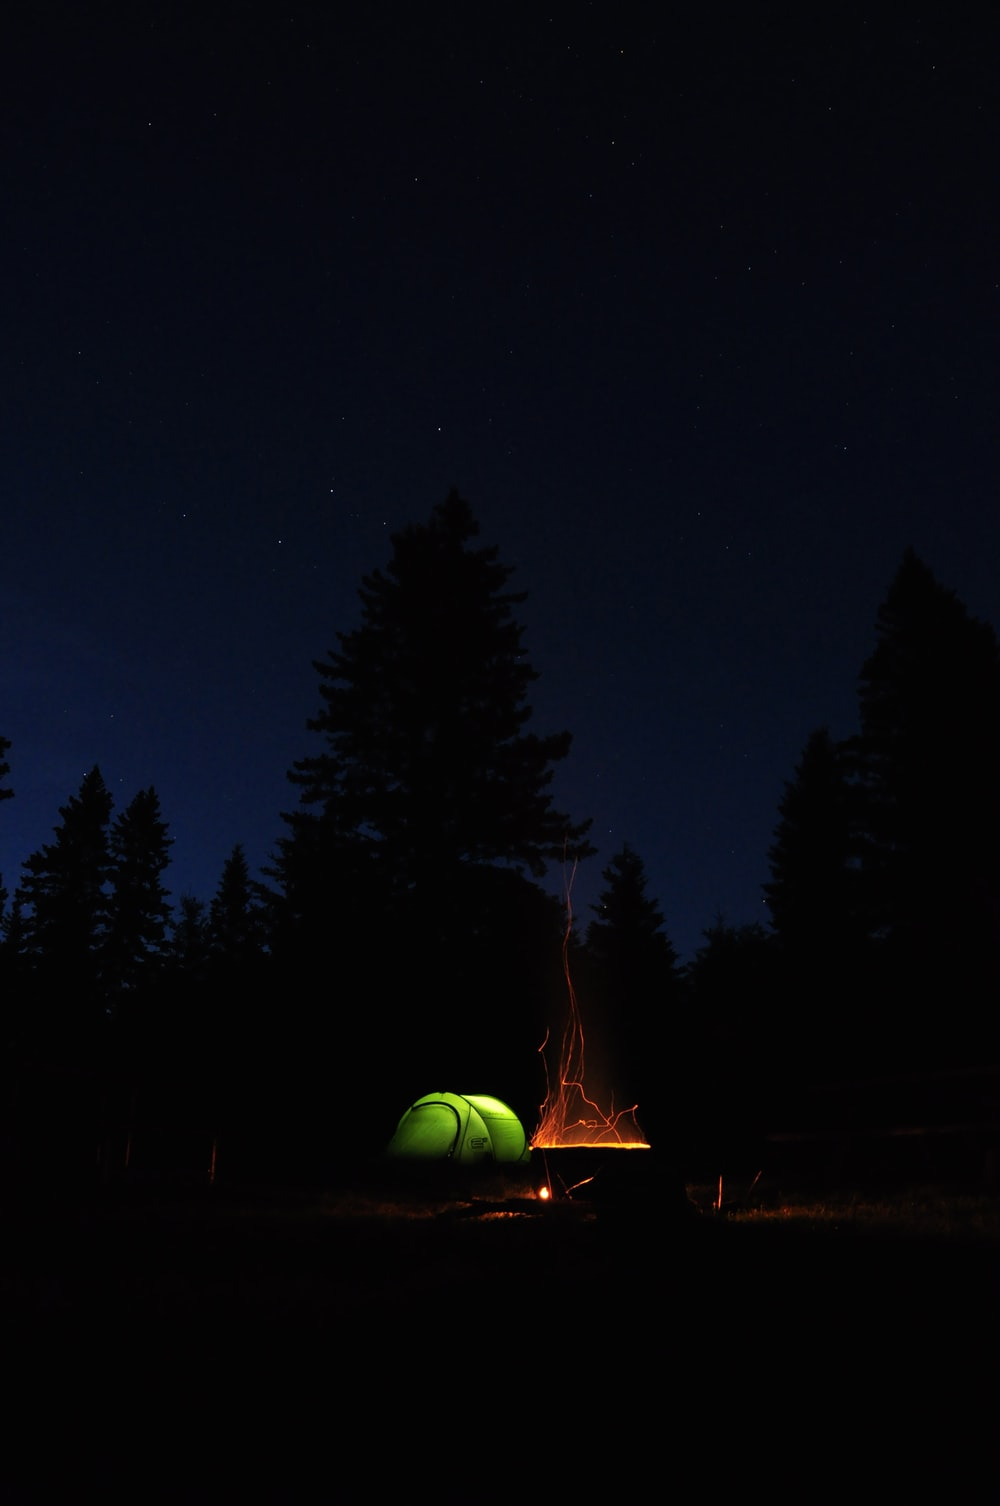 lighted bonfire beside tent at night